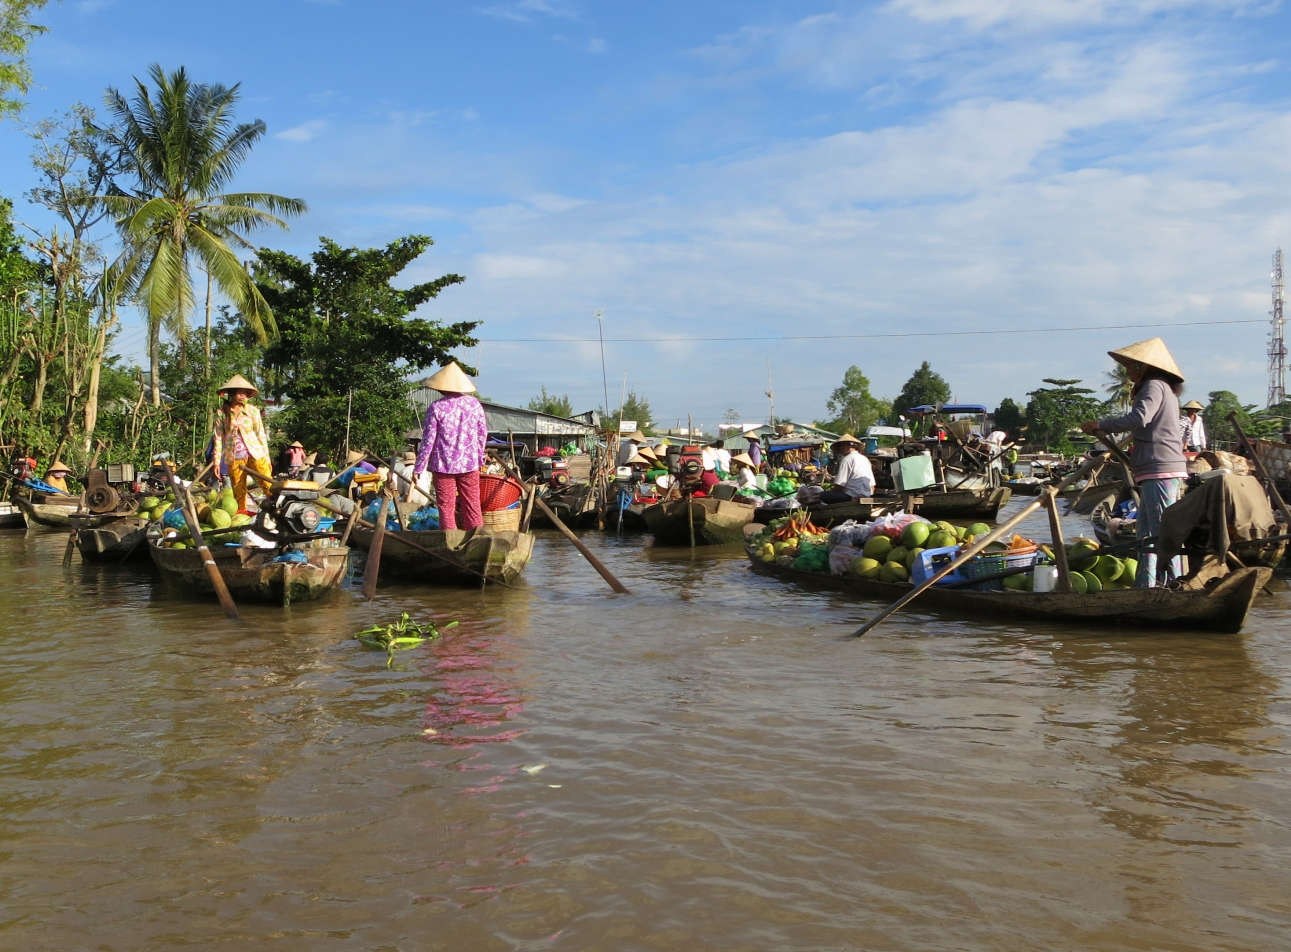 Phong Dien Market consist of only small boats and is therfore more cozy and bustling